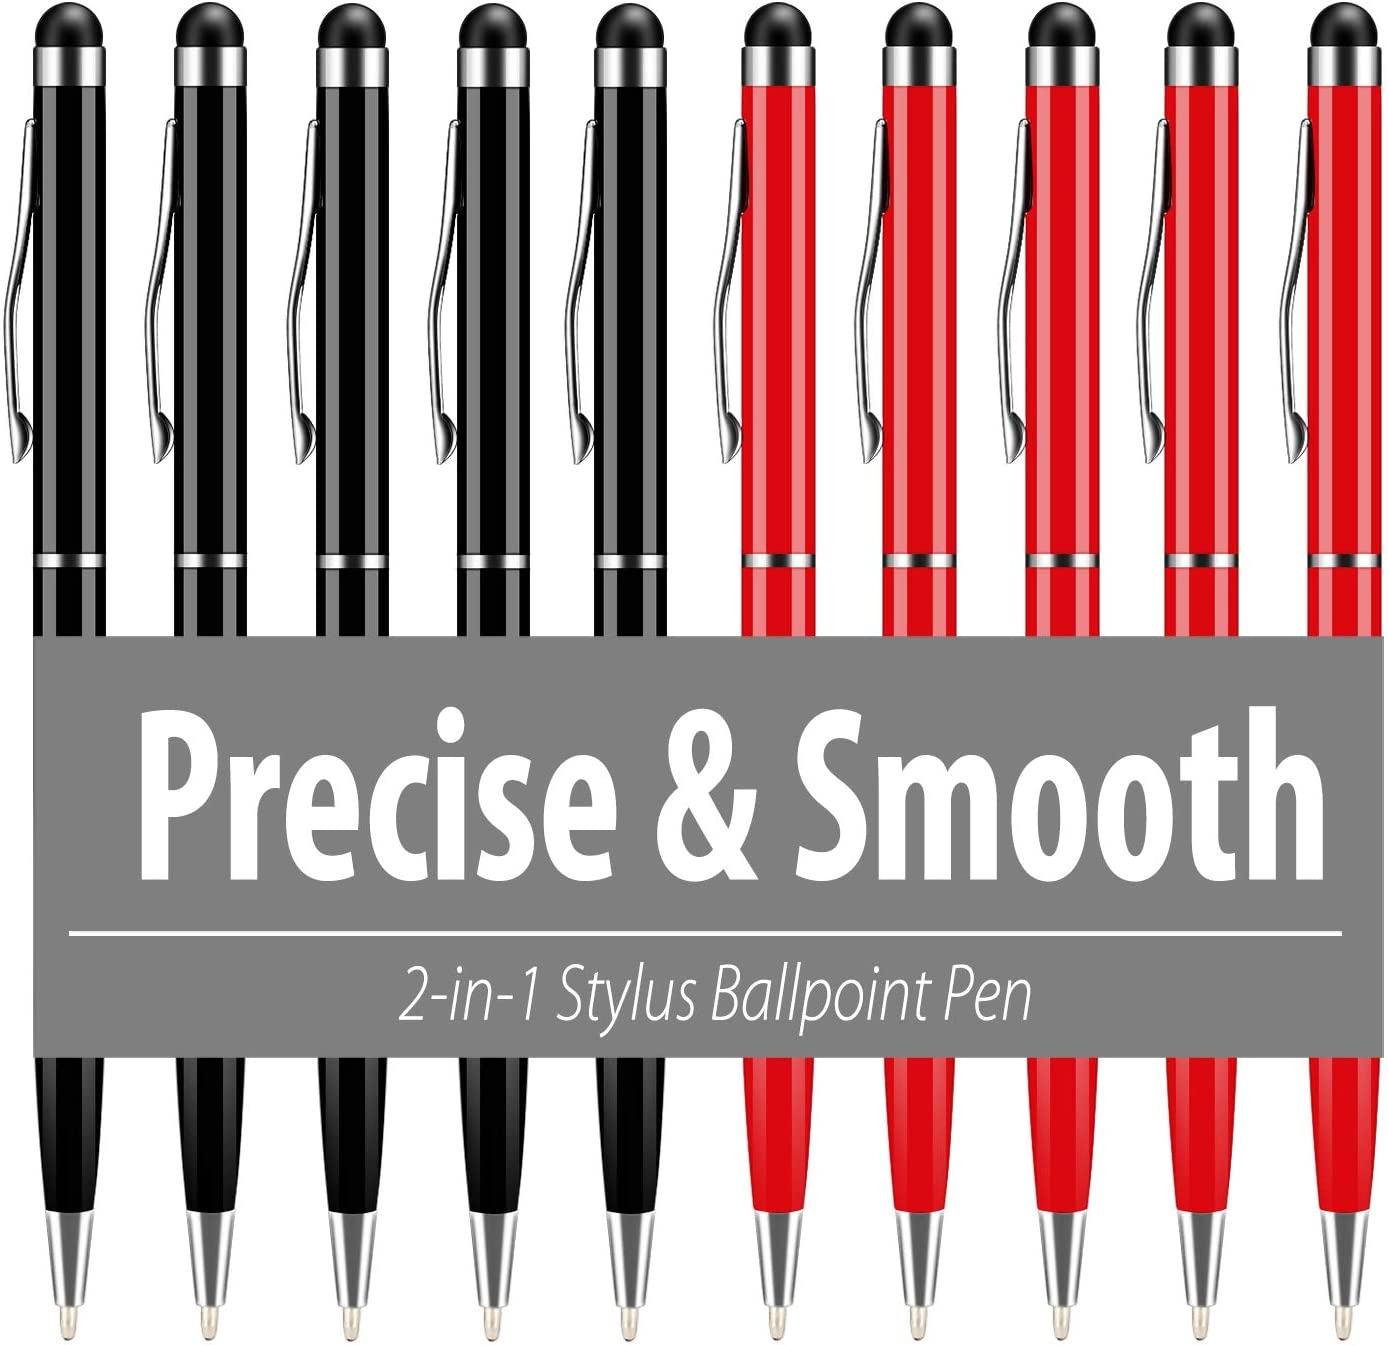 Stylus Pens for Touch Screens,UROPHYLLA 10pcs Universal 2 in 1 Capacitive Stylus Ballpoint Pen for iPad,iPhone,Samsung,HTC,Kindle,Tablet,All Capacitive Touch Screen Device -Black+Red